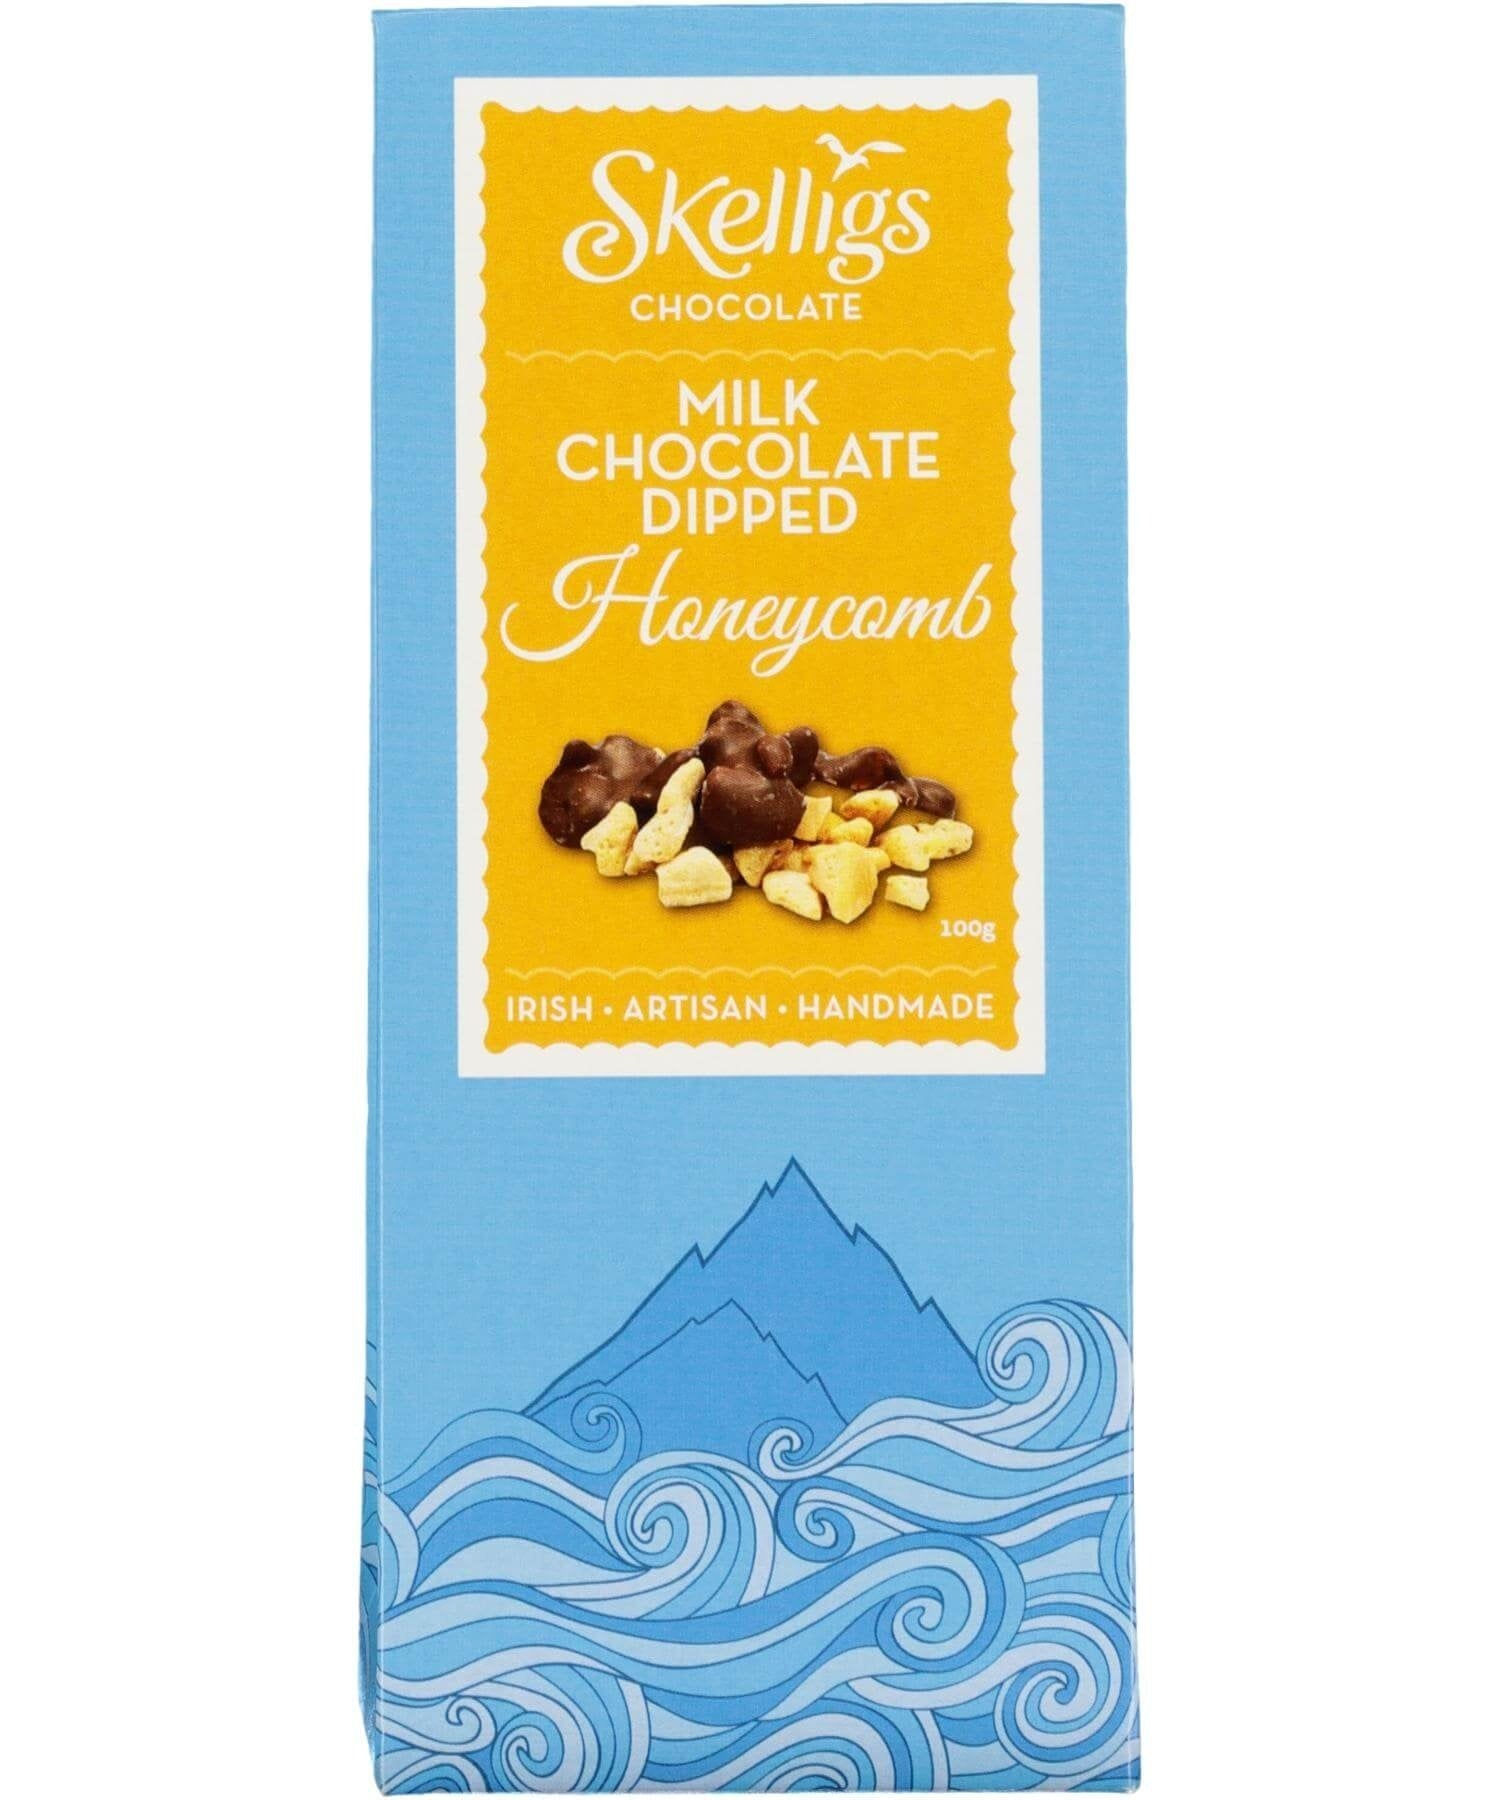 Milk Chocolate Dipped Honeycomb - [Skelligs Chocolate] - Food Gifts - Irish Gifts